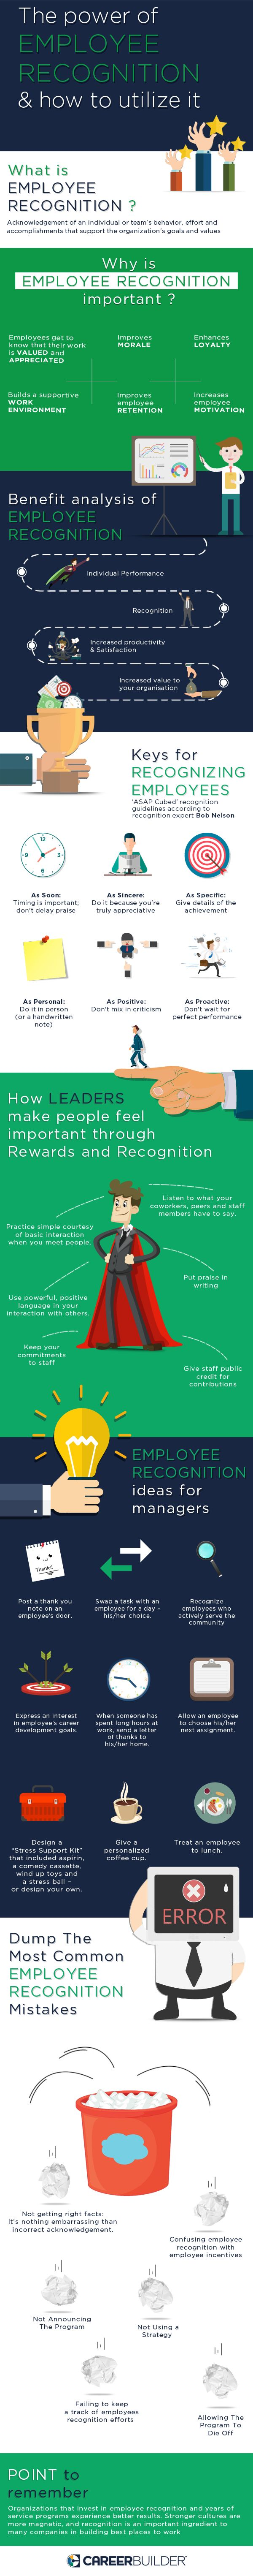 Management has to learn to recognize the valuable ideas among the many novel ones, and then finds ways of implementing them.  This infograhics by Career Builder India clearly explains what needs to be done for effective employee recognition and how.